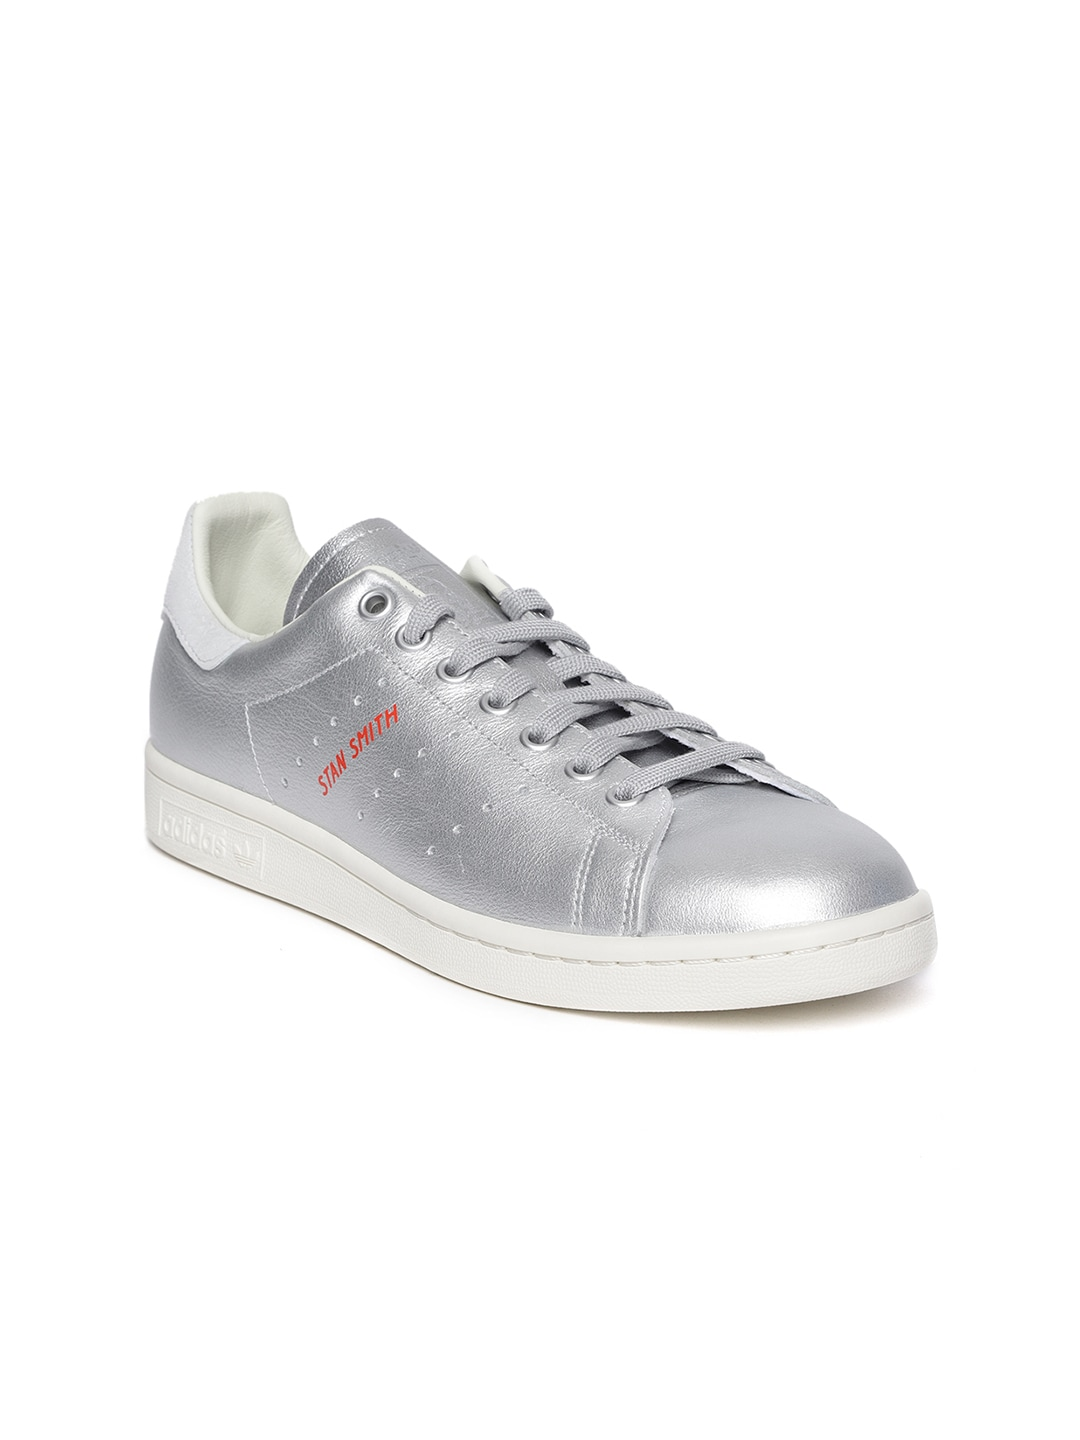 premium selection 4e595 a5a9b Adidas Stan Smith Sneakers - Buy Stan Smith Shoes and Sneakers Online in  India - Myntra